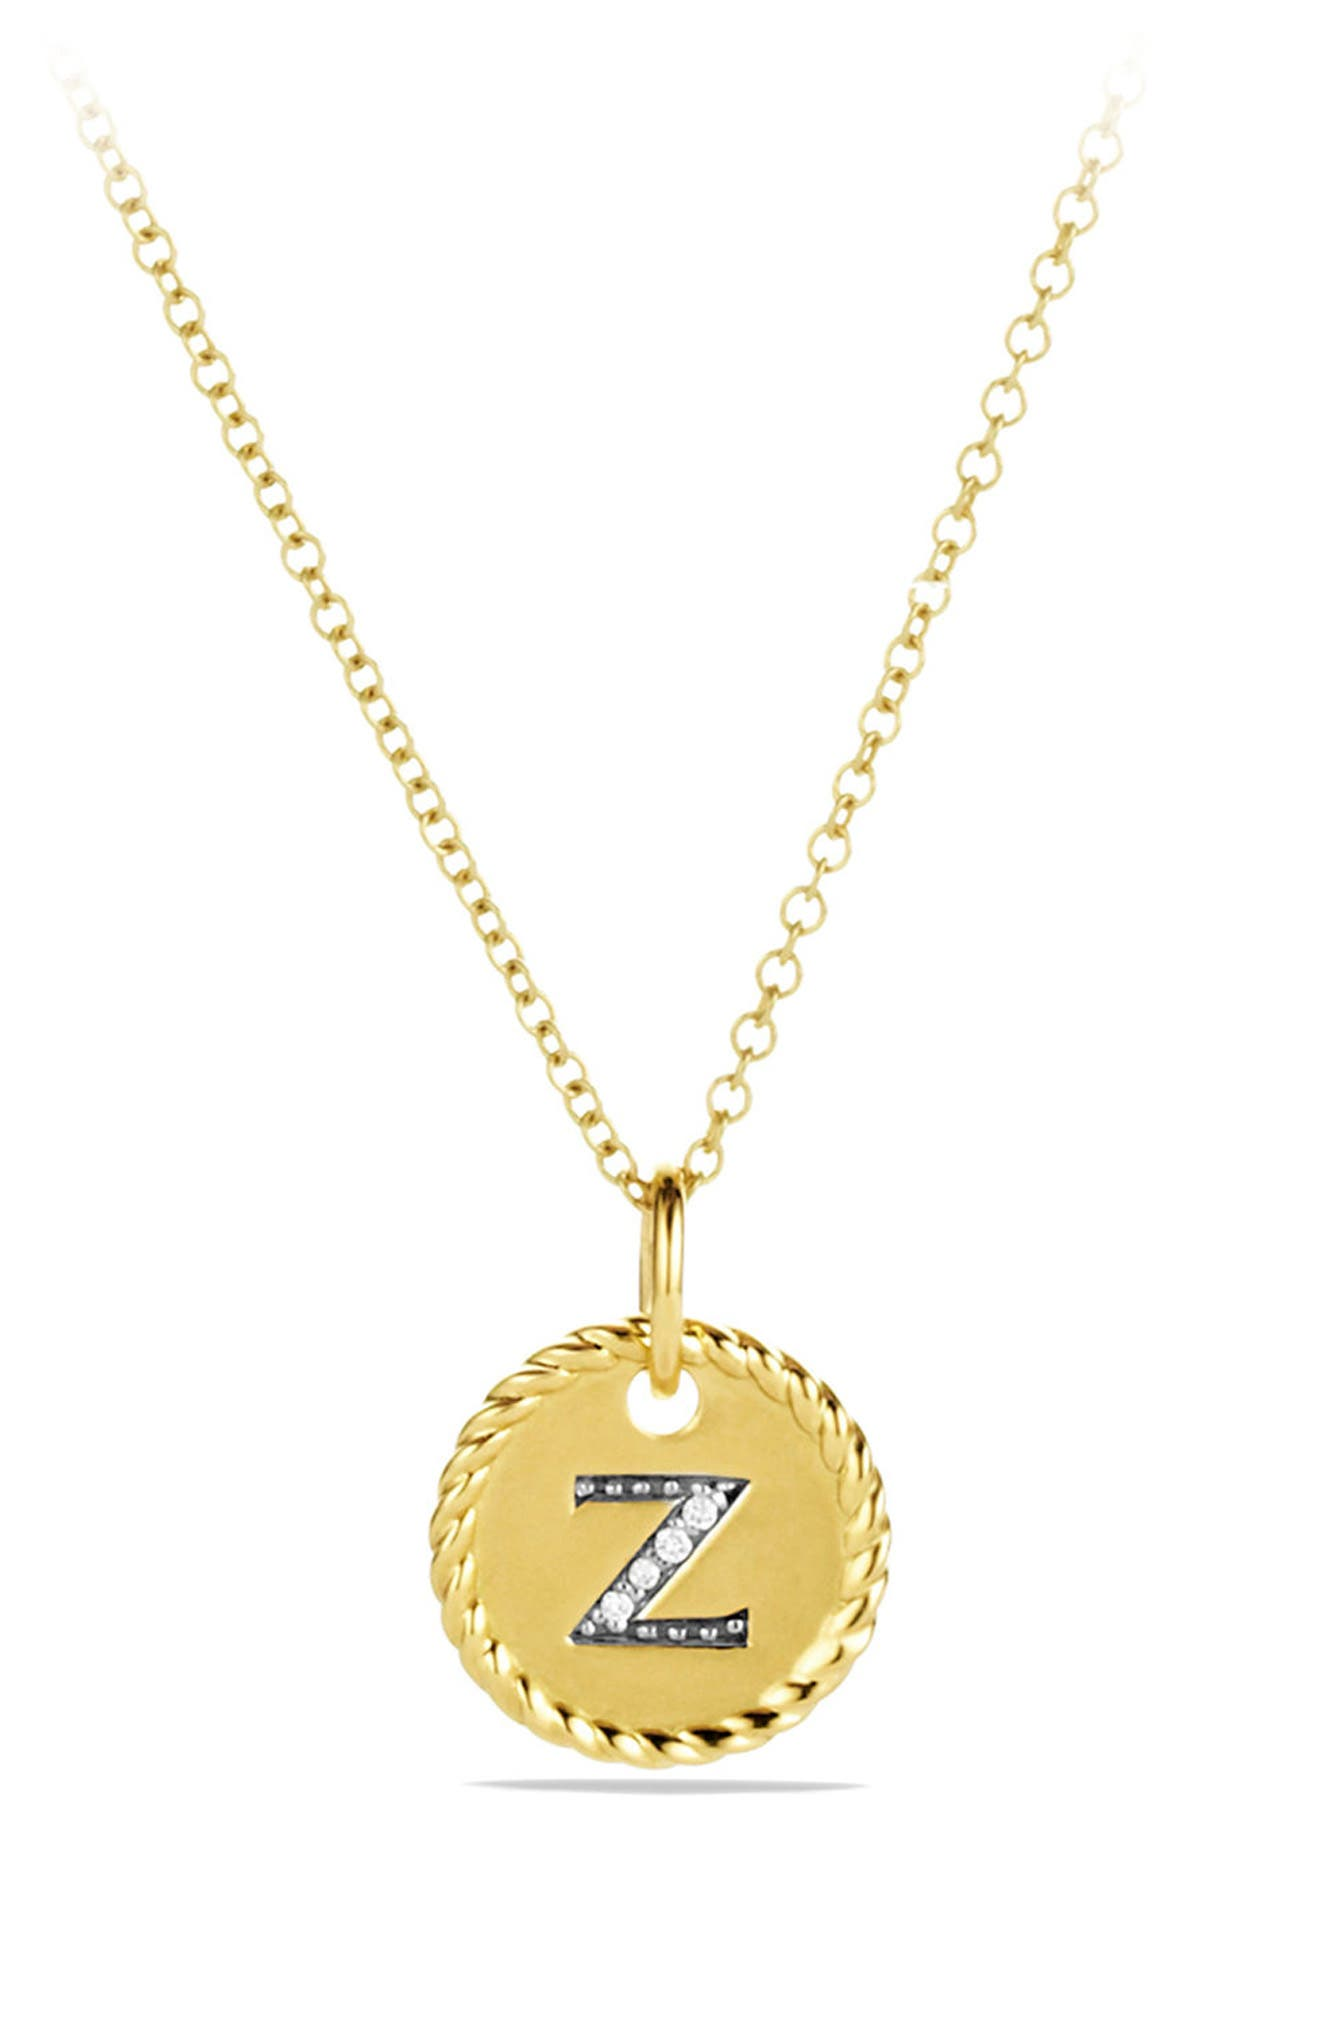 Main Image - David Yurman Initial Charm Necklace with Diamonds in 18K Gold